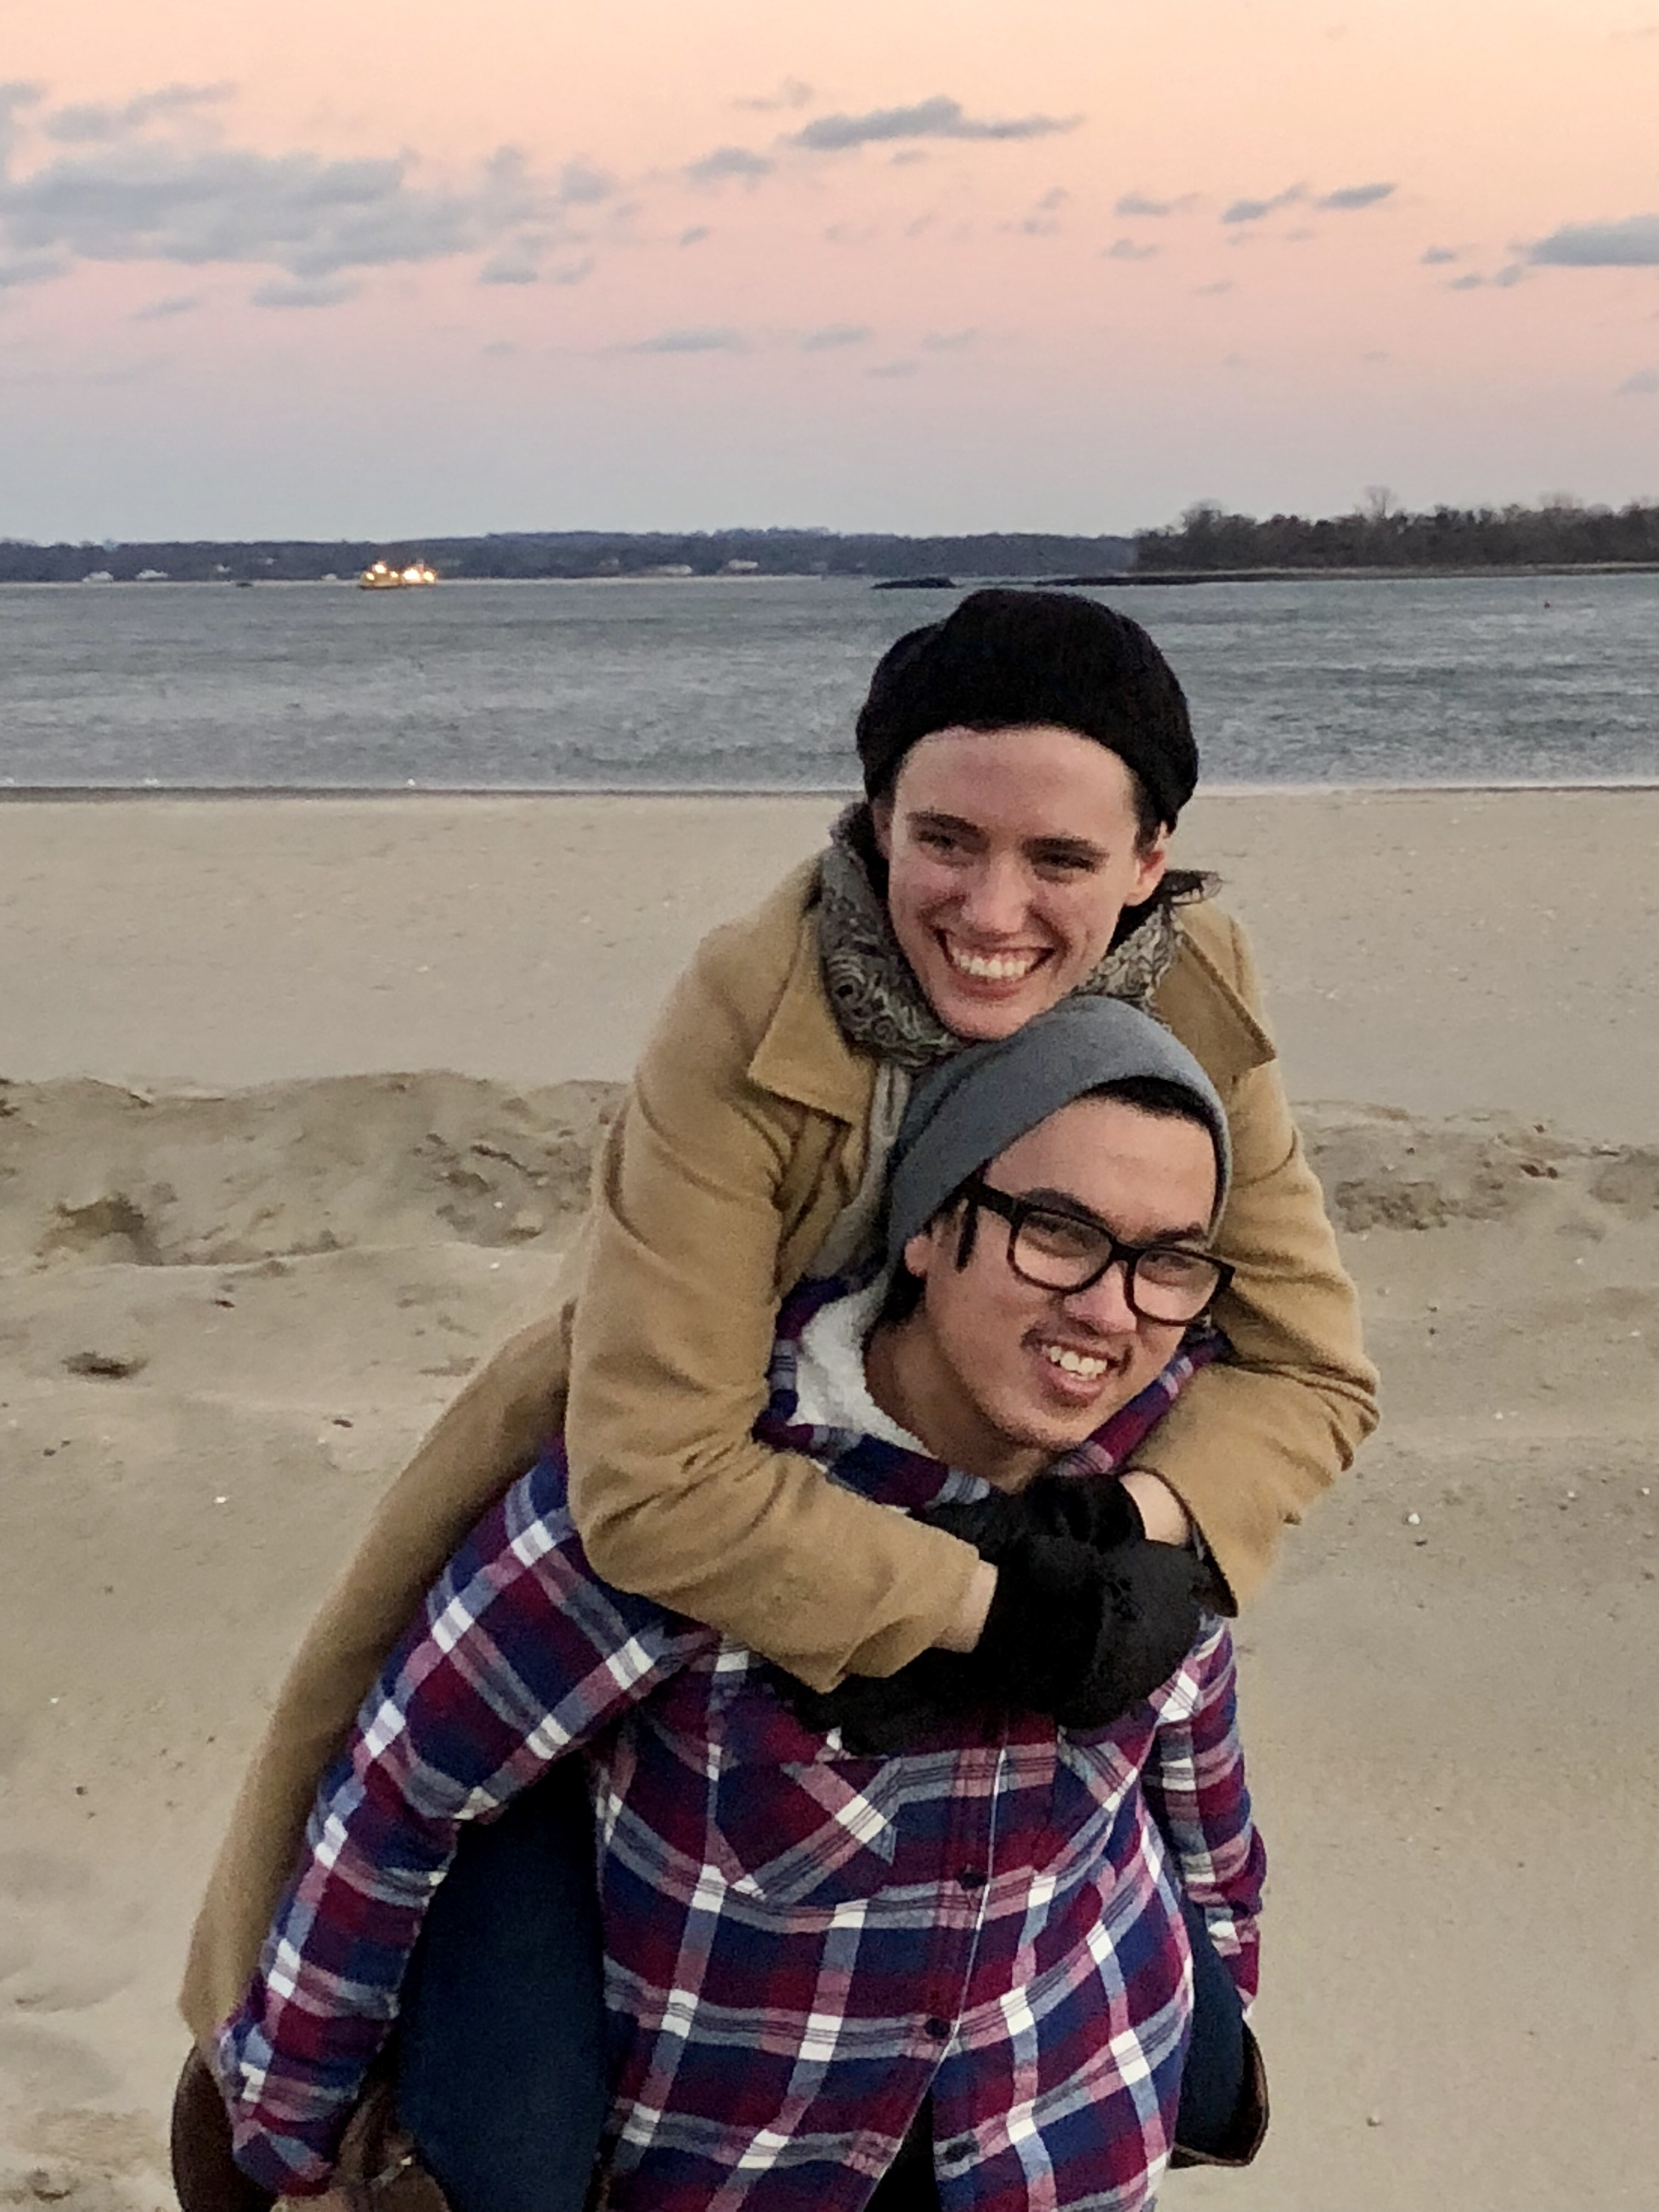 Tori (the author) clinging onto her husband's (Johnny) back as he carries her over the sand at orchard beach in the Bronx. The sun is setting over the water, the sky is pink. They are both wearing coats and hats. Both are grinning and looking away from the camera in opposite directions.